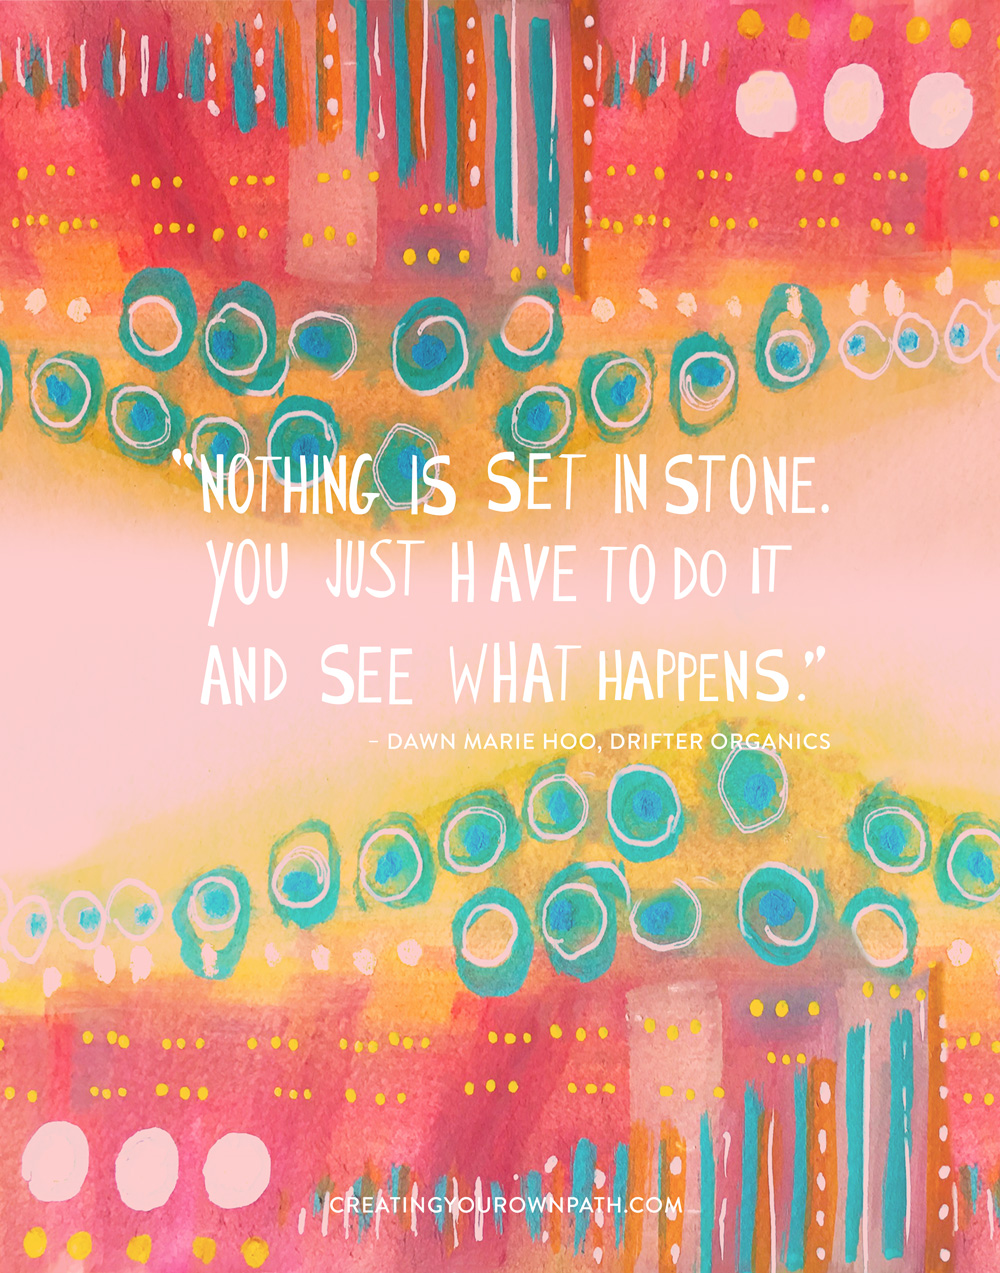 """Nothing is set in stone. You just have to do it and see what happens."" — Dawn Marie Hoo,  Drifter Organics  // Artwork by  Melanie Biehle"